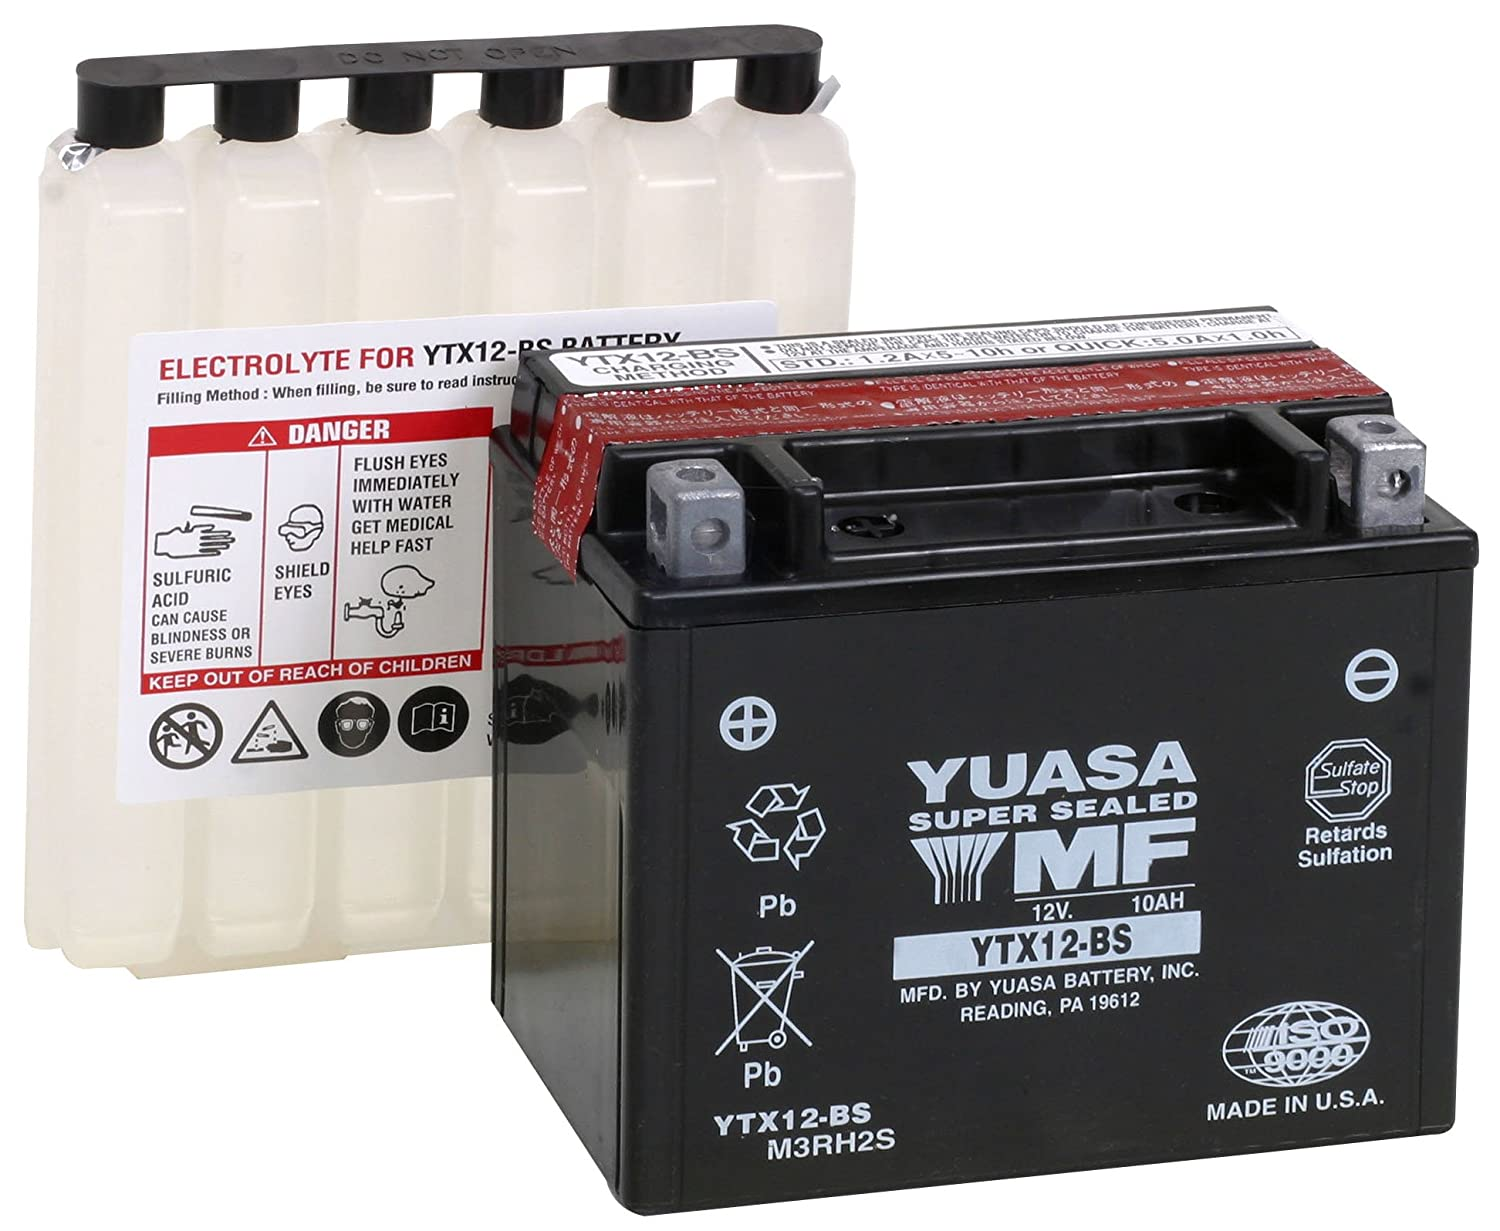 Yuasa YUAM3RH2S Lead_Acid_Battery